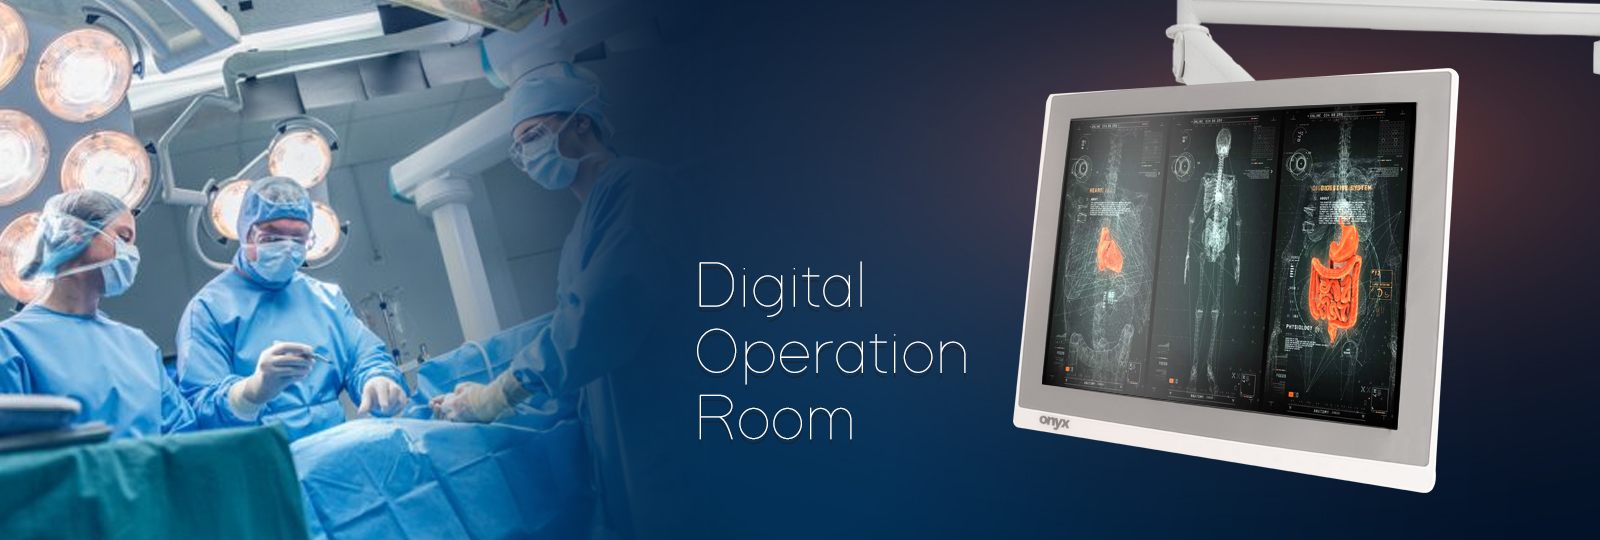 Digital Operation Room Solution